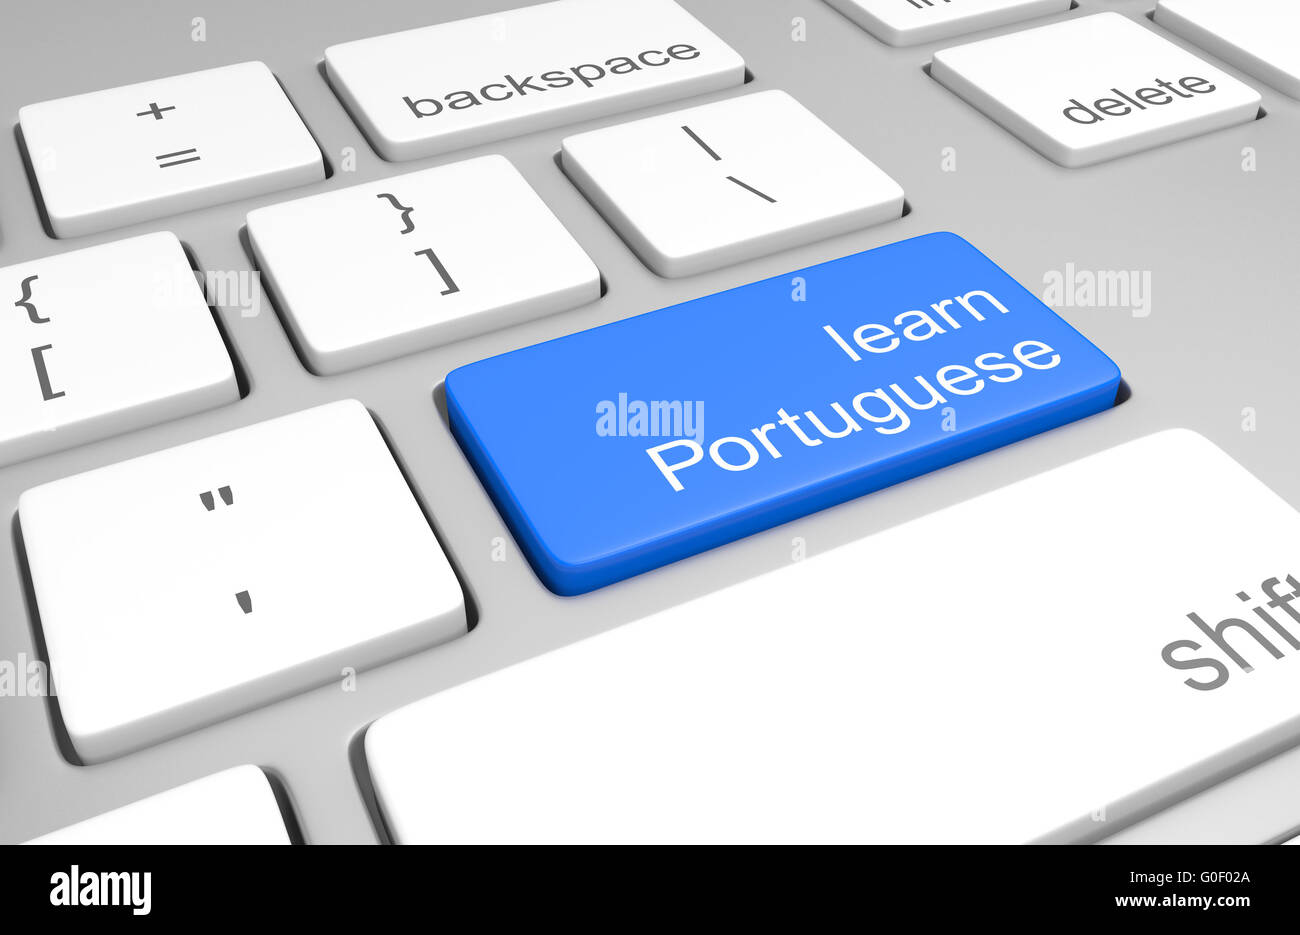 Learn Portuguese key on a computer keyboard for online classes to speak, read, and write the language, 3D rendering Stock Photo